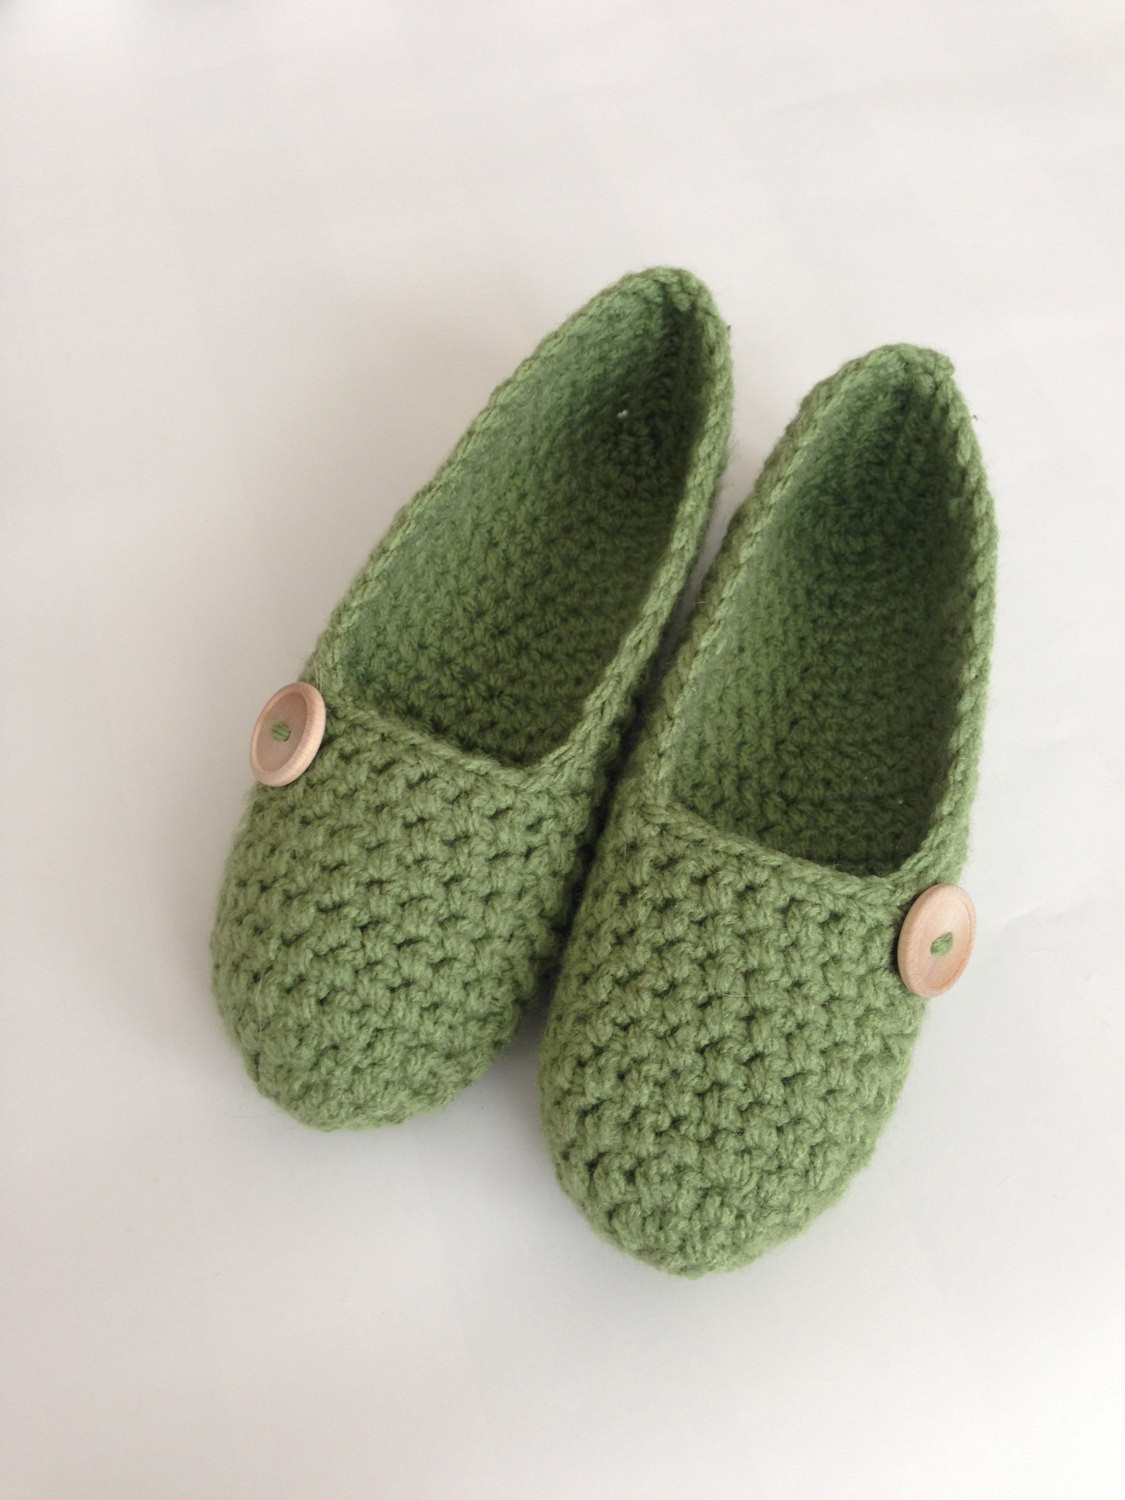 Crochet Boots Lovely Tea Leaf Simply Slippers Adult Crochet Slippers Women Of Brilliant 43 Photos Crochet Boots